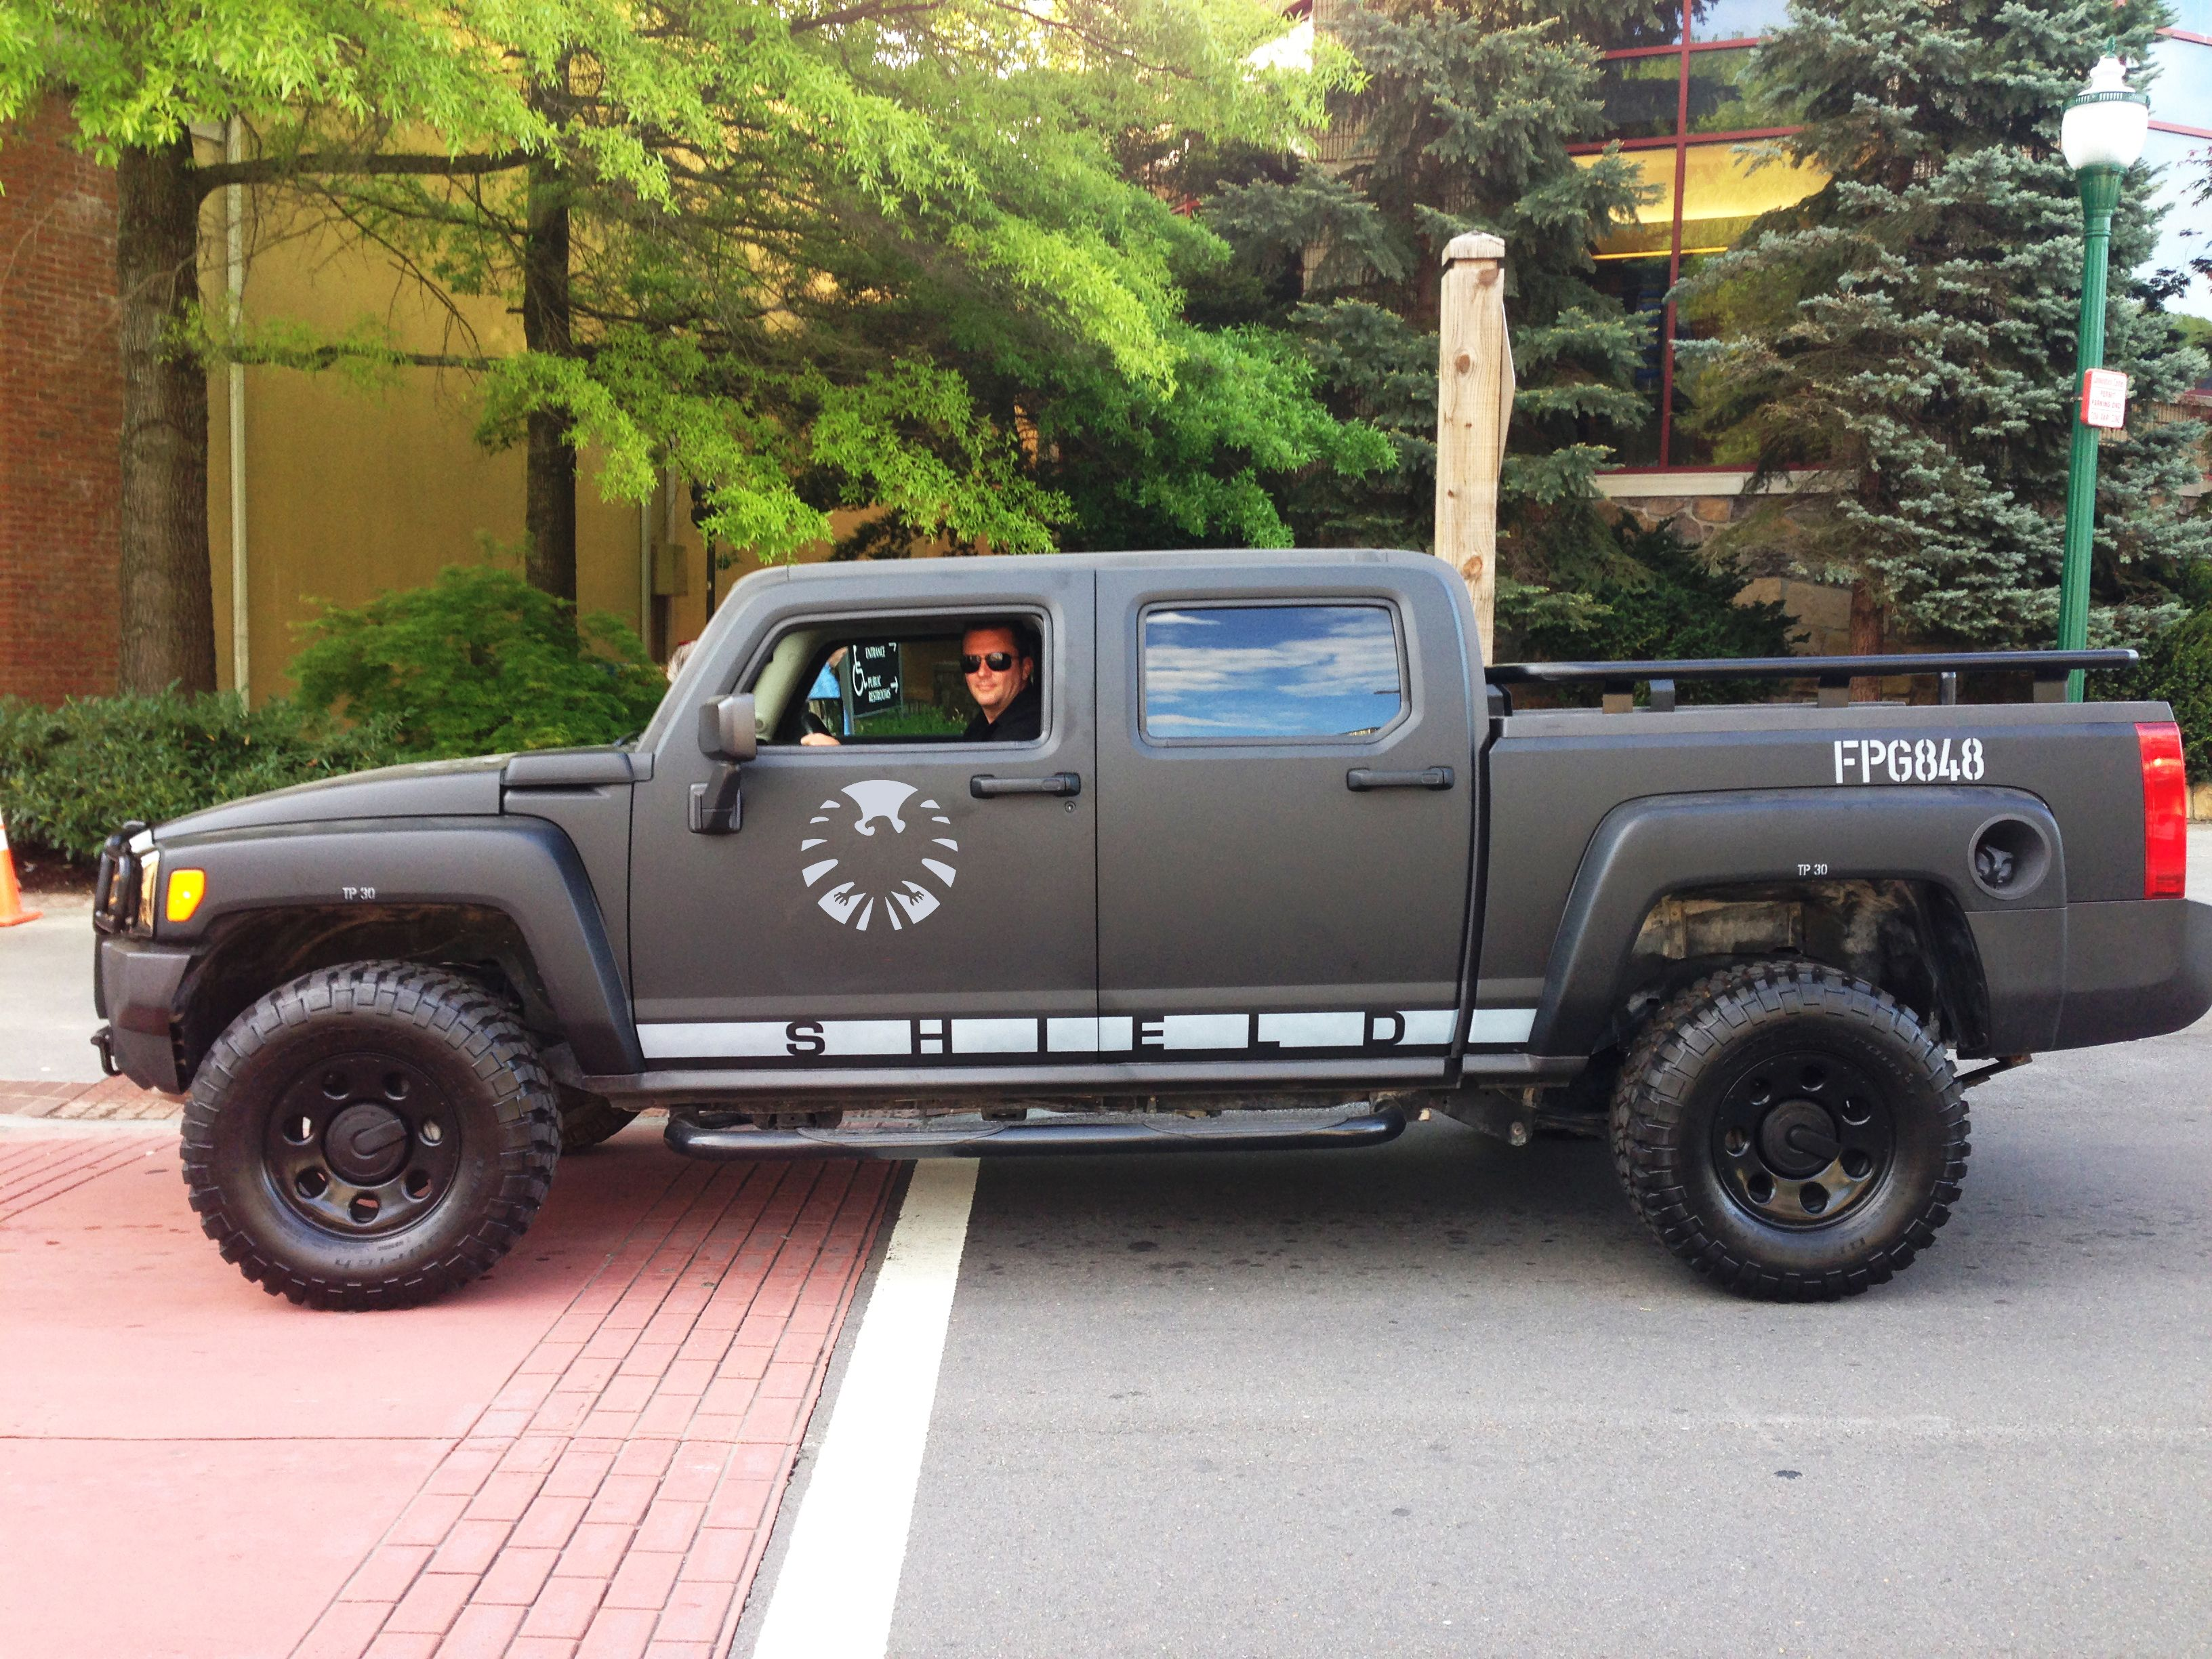 Pin By Chad Netherland Superhuman On Avengers Hummer H3t Hummer Truck Hummer Cars Hummer